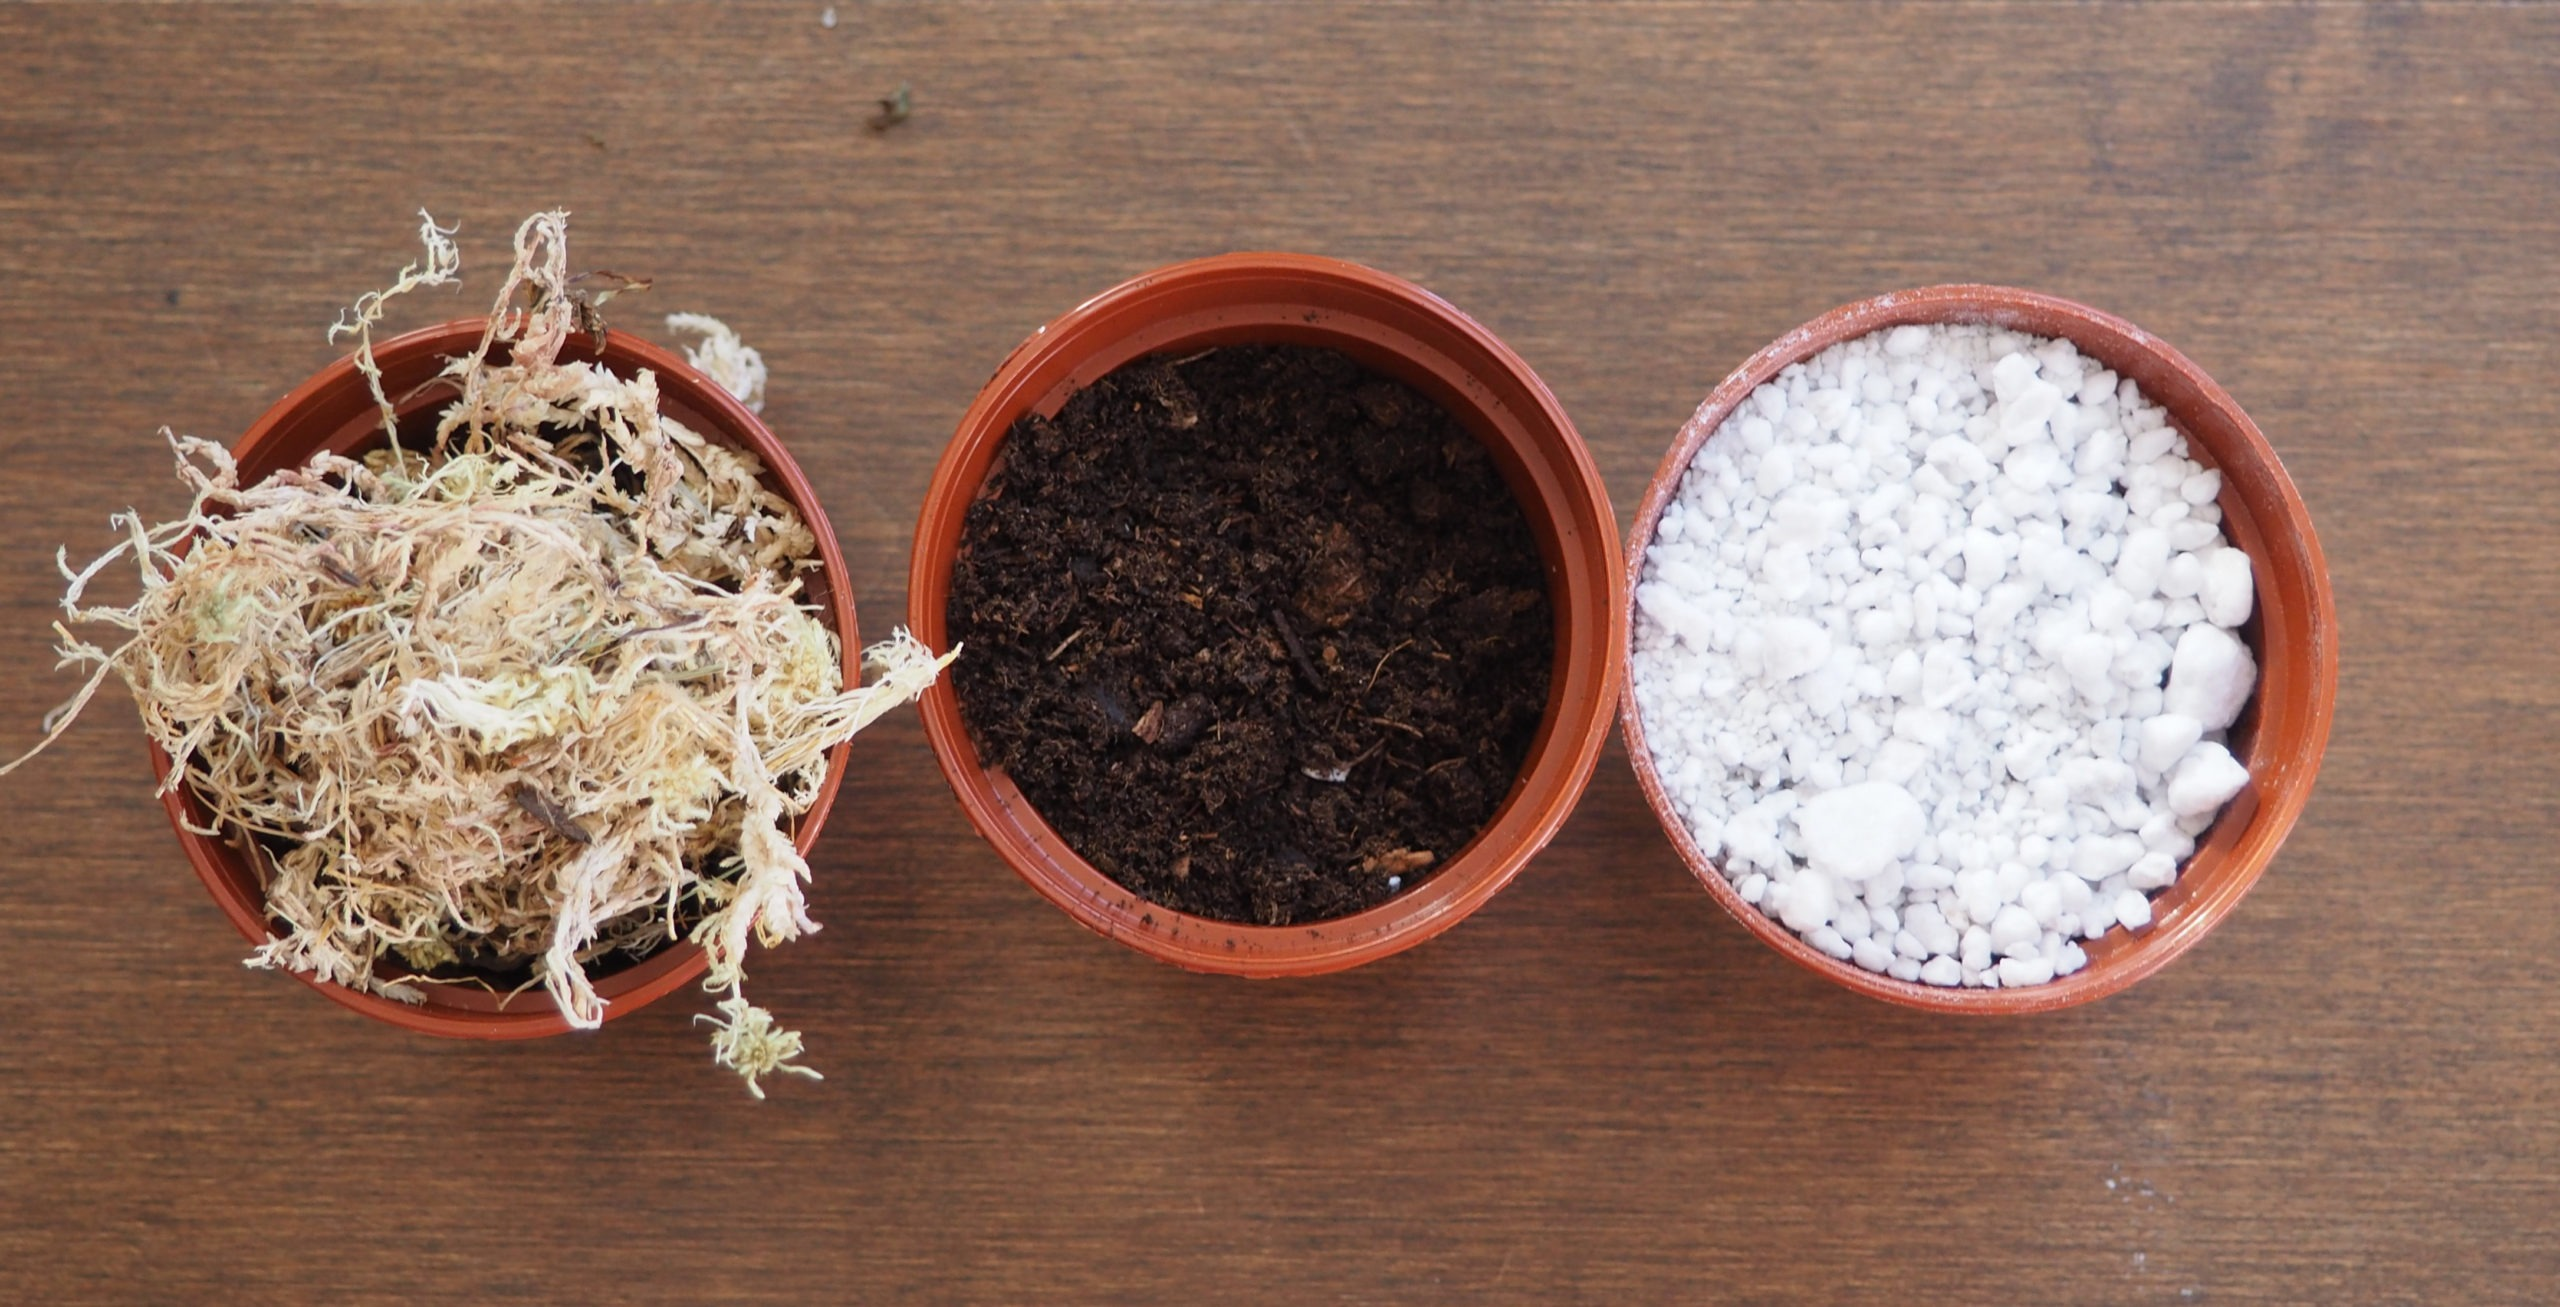 Soil mix in different pots